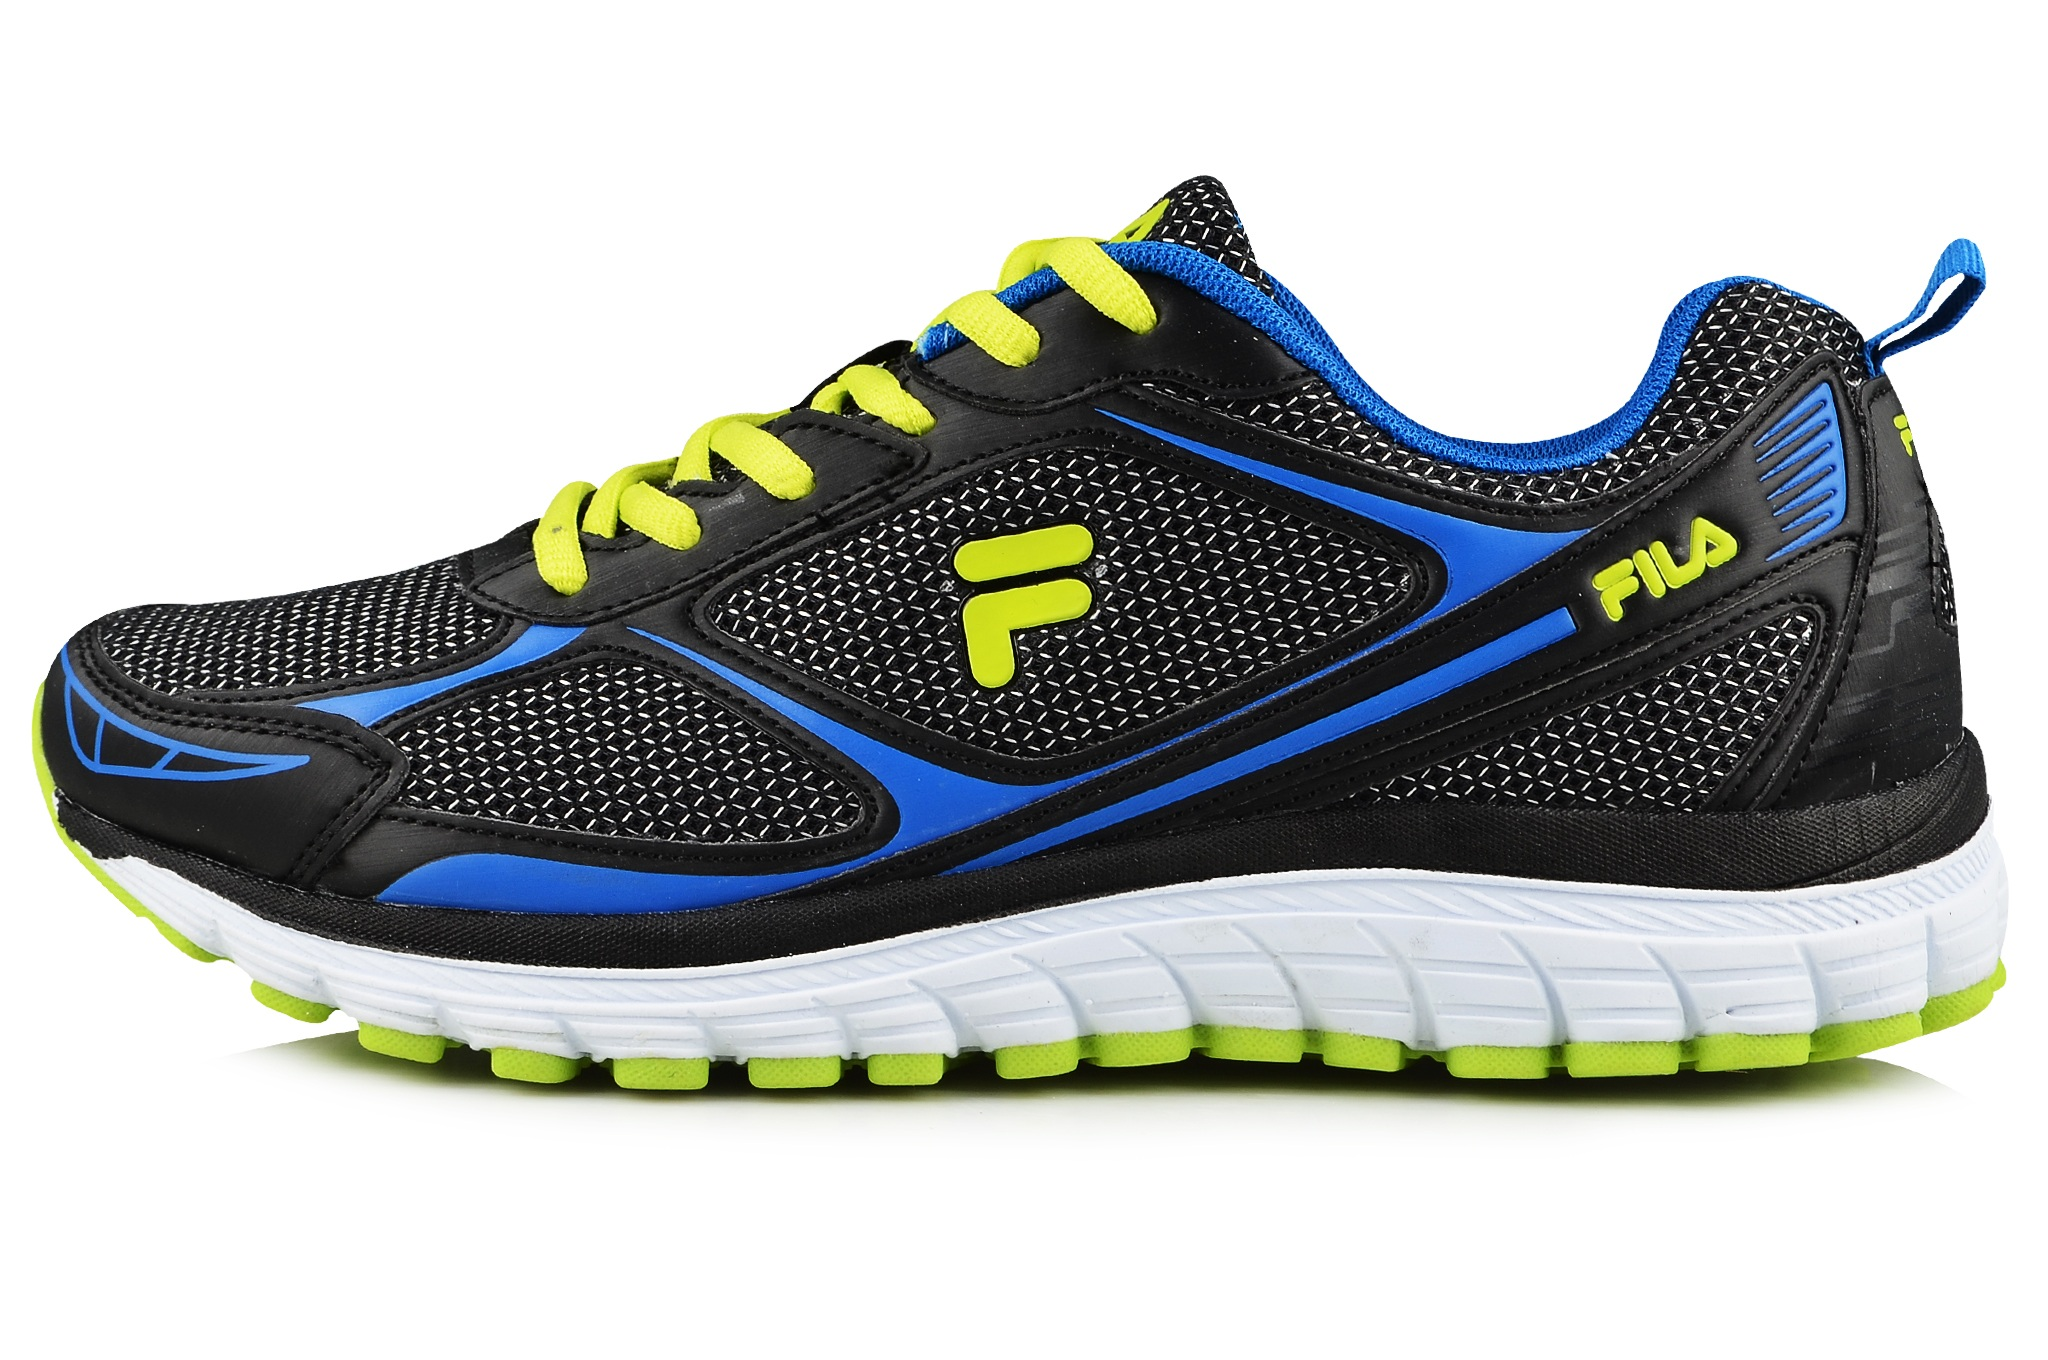 School bags online cyprus - Bullet Mens Running Shoes By Fila Characteristics Fabric Upper For